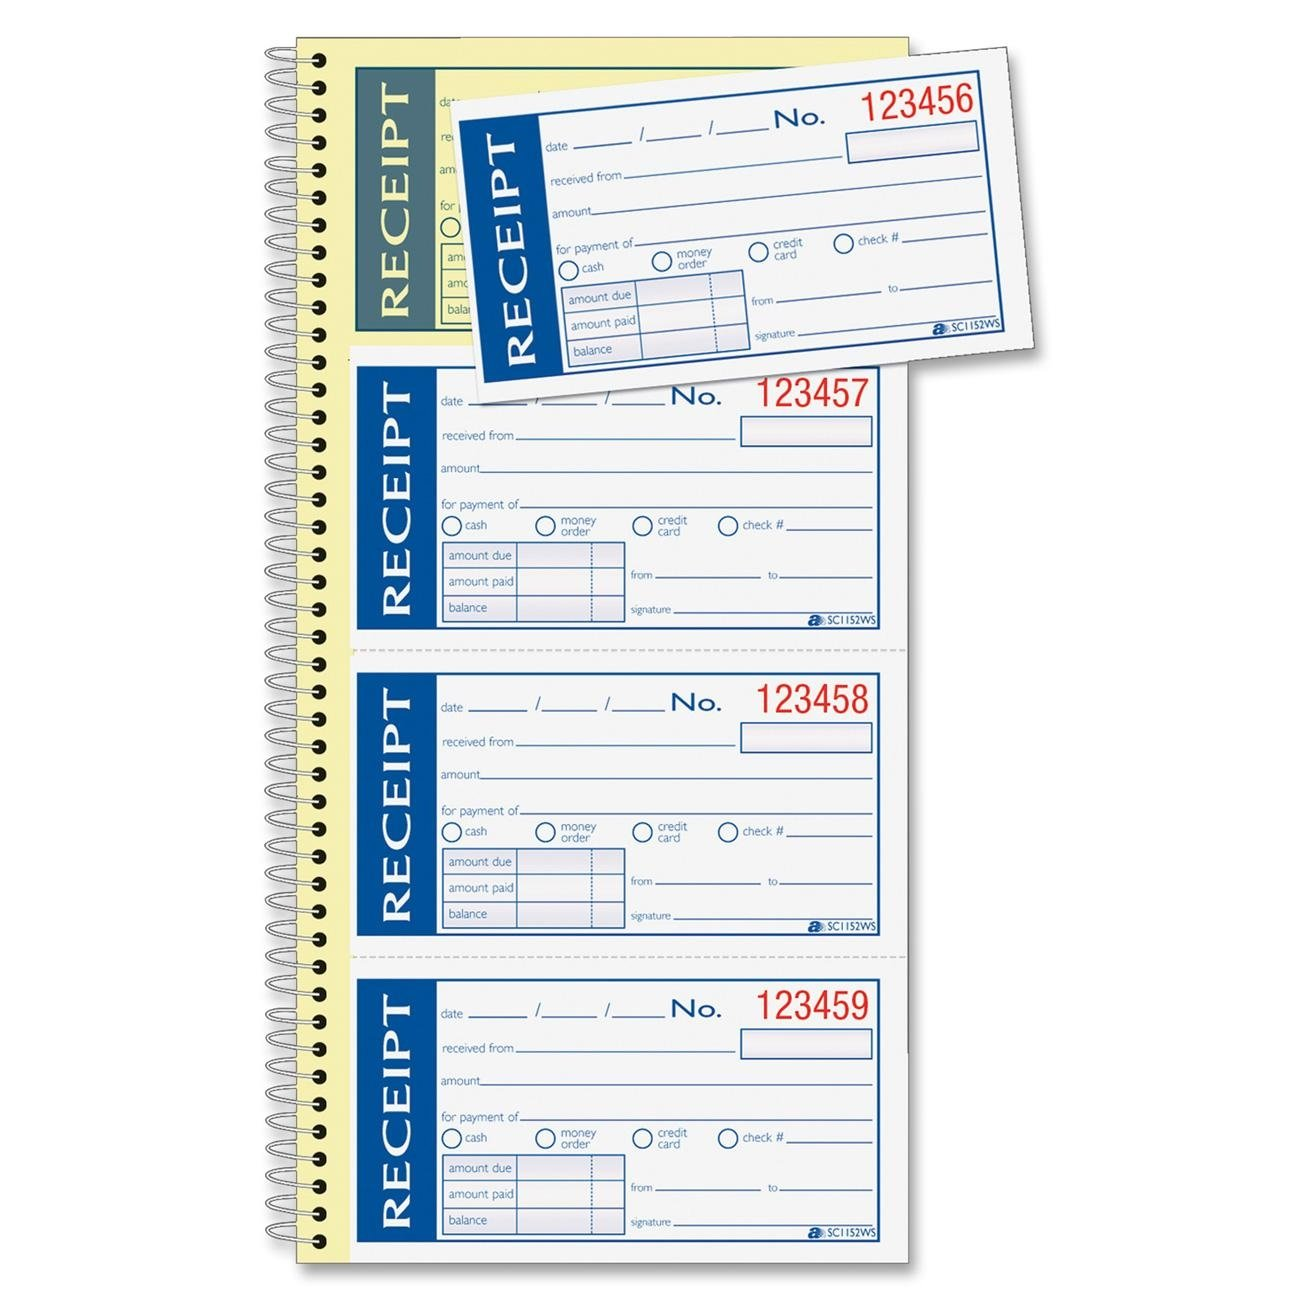 """Adams Write n' Stick Receipt Book, 2-Part, Carbonless, White/Canary, 5-1/4"""" x 11"""", Spiral Bound, 200 Sets per Book, 4 Receipts per Page (SC1152WS)"""